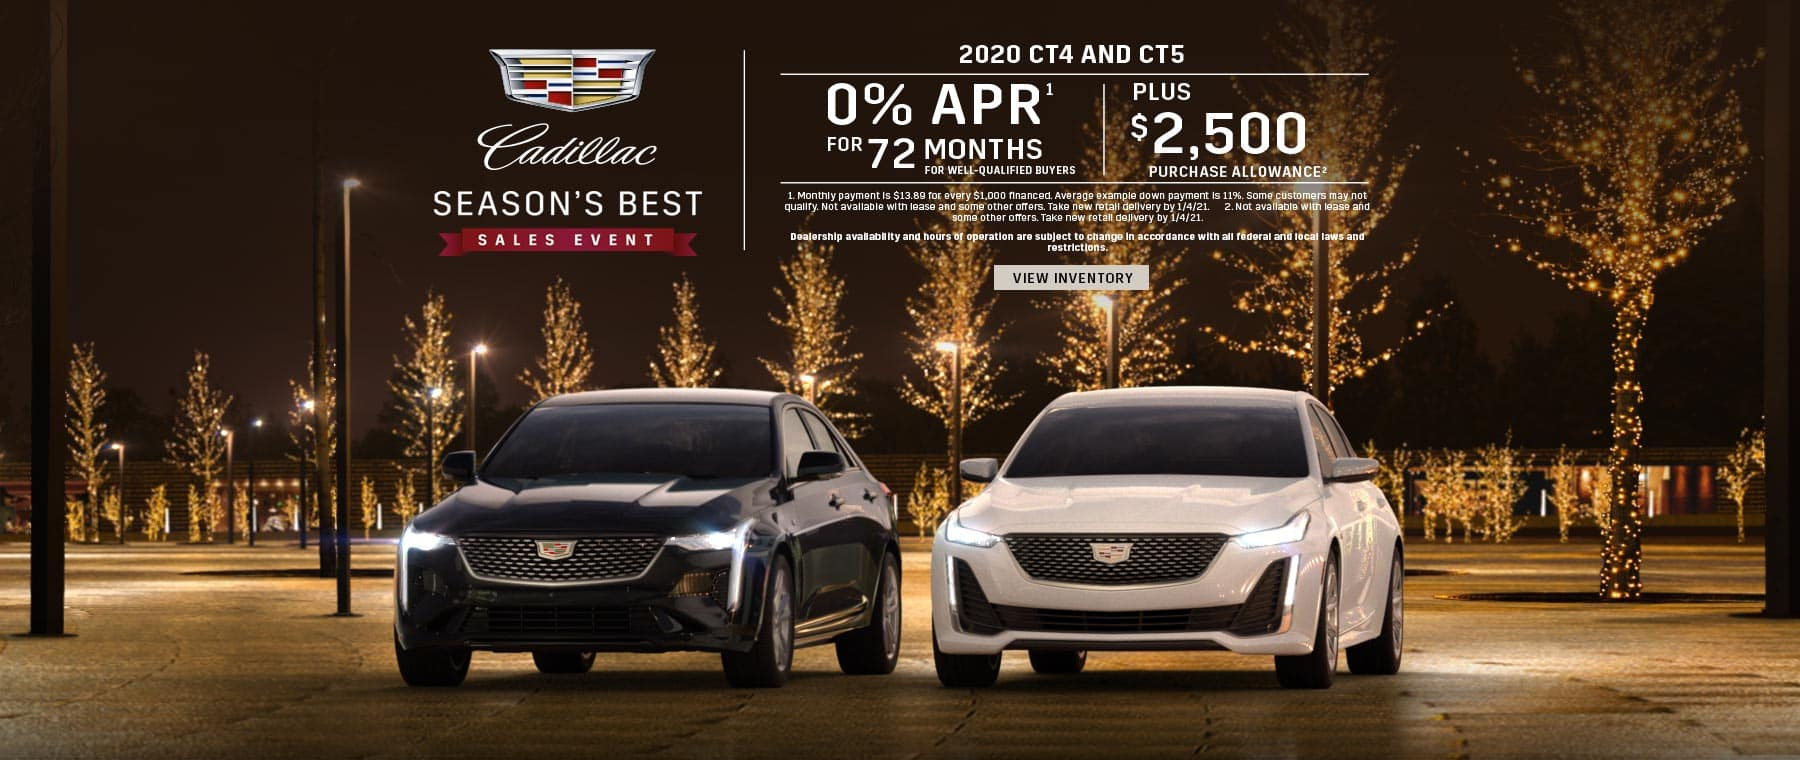 0% APR for 72 + $2,500 on 20MY CT4 & CT5